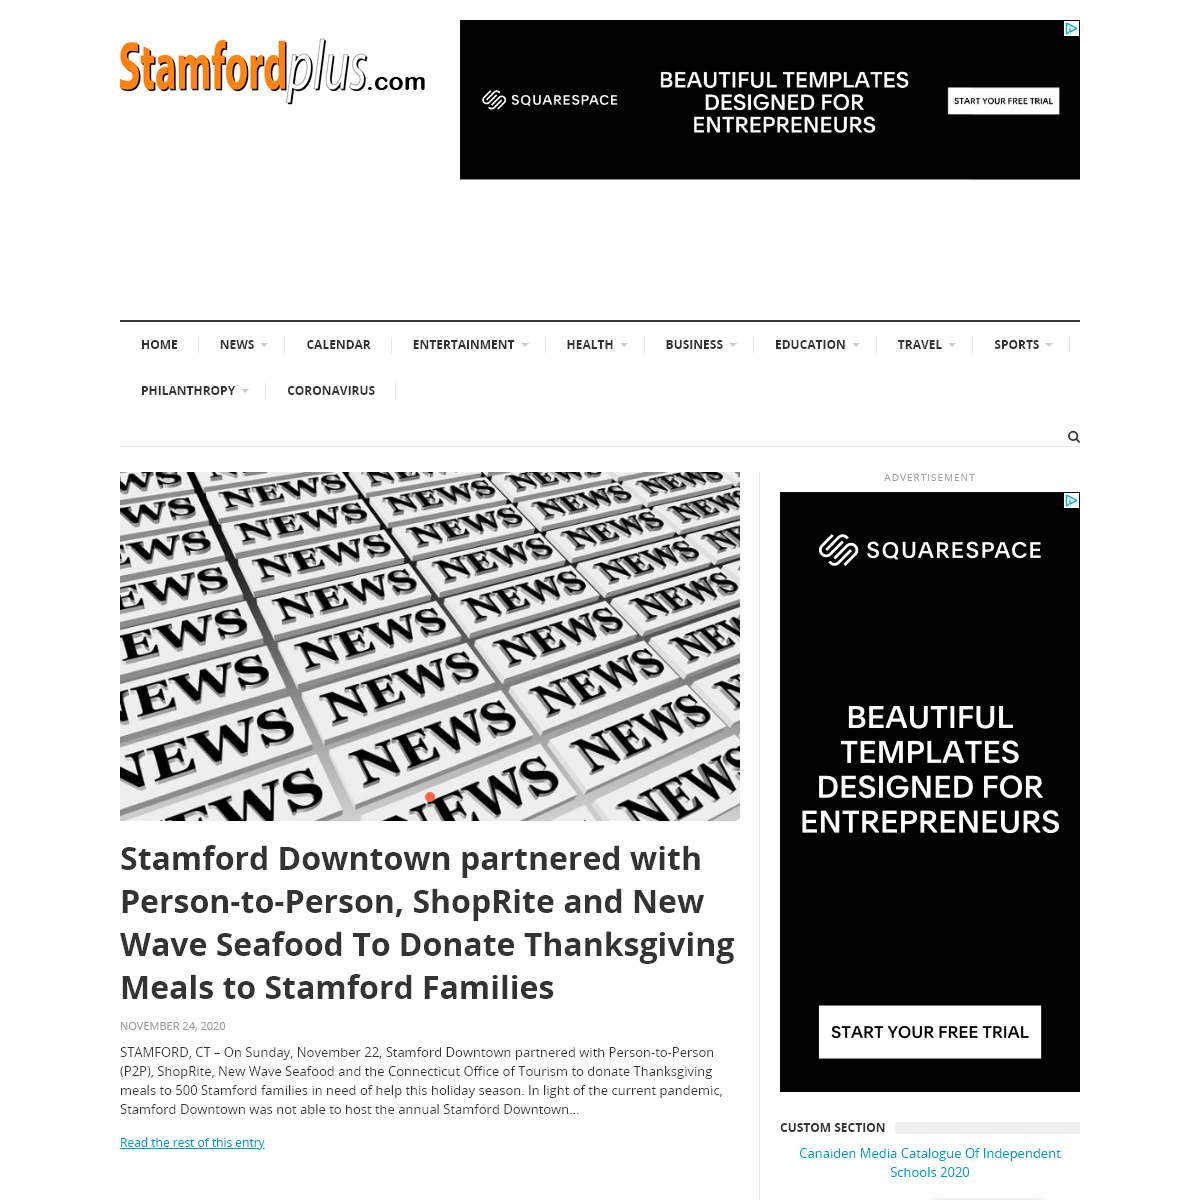 StamfordPlus.com – Local news and stories from Stamford and the area. Home of Stamford Plus magazine